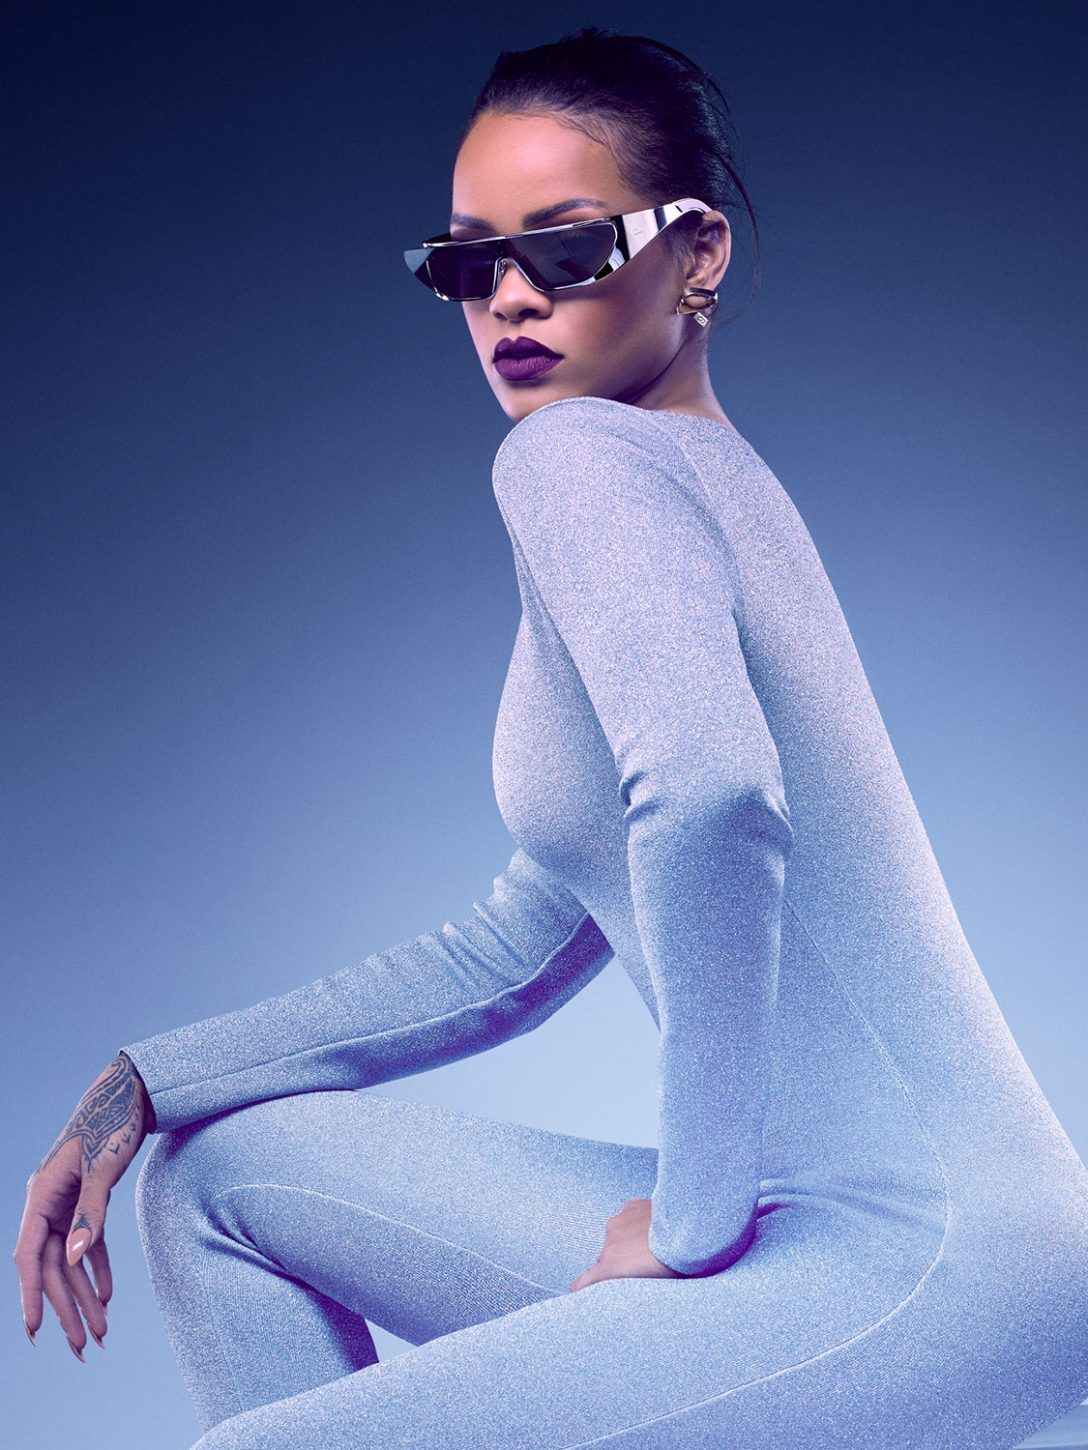 rihanna-collaboration-dior-sunglasses-lunettes-paris-capitale-magazine